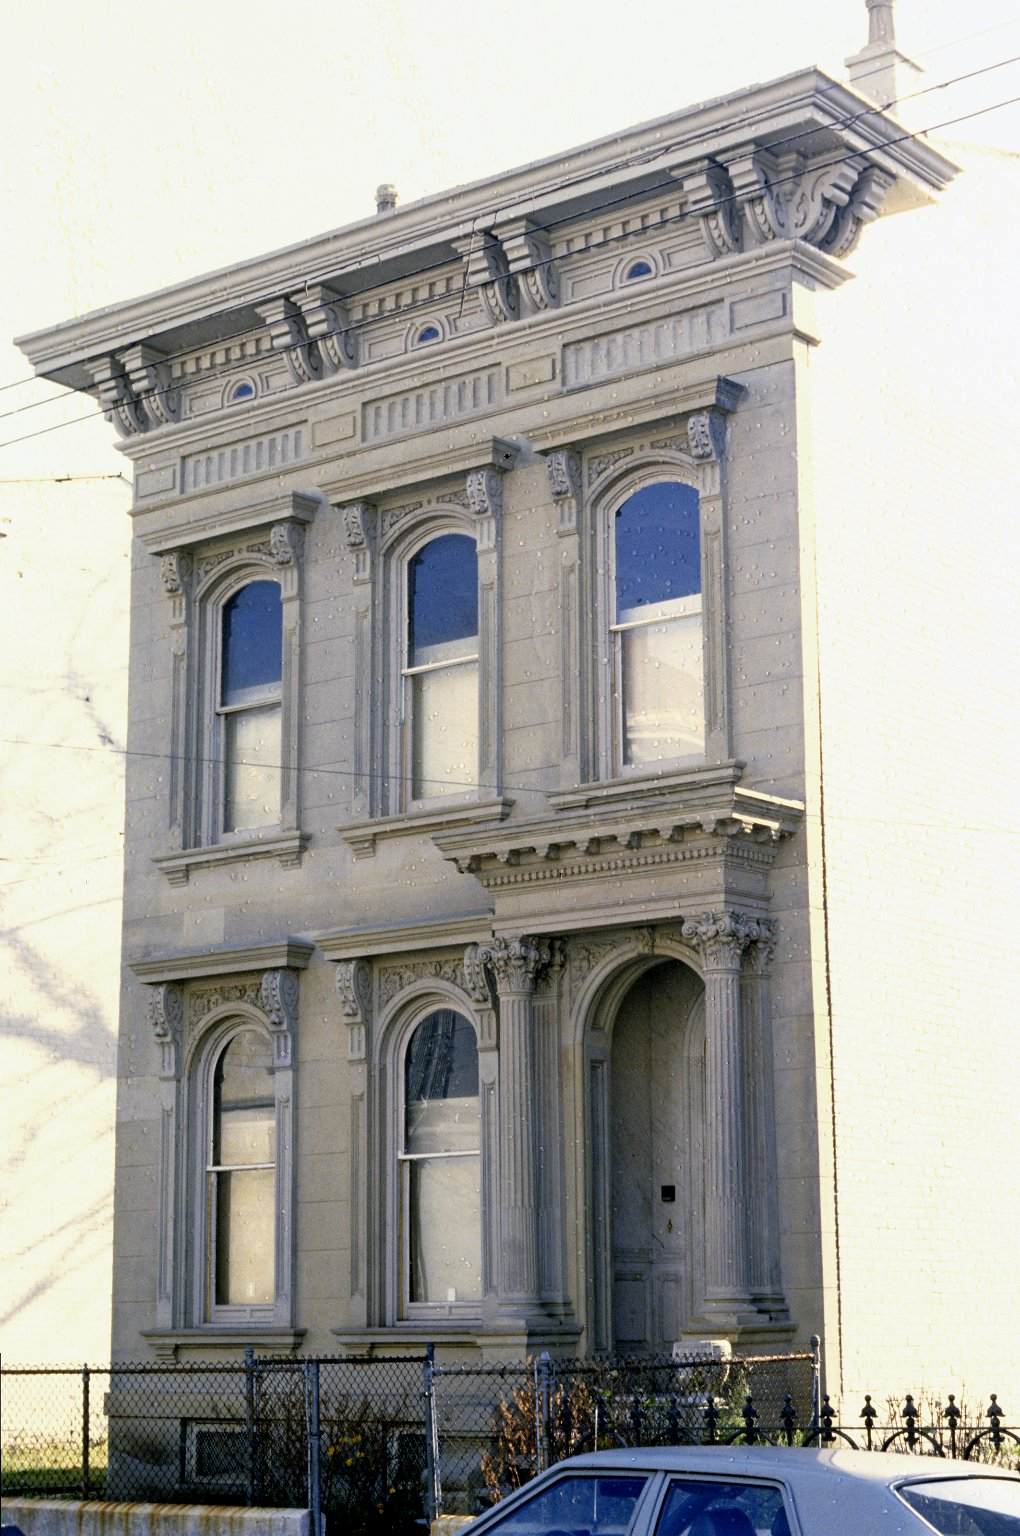 837 Dayton Street, West End, Cincinnati, Ohio